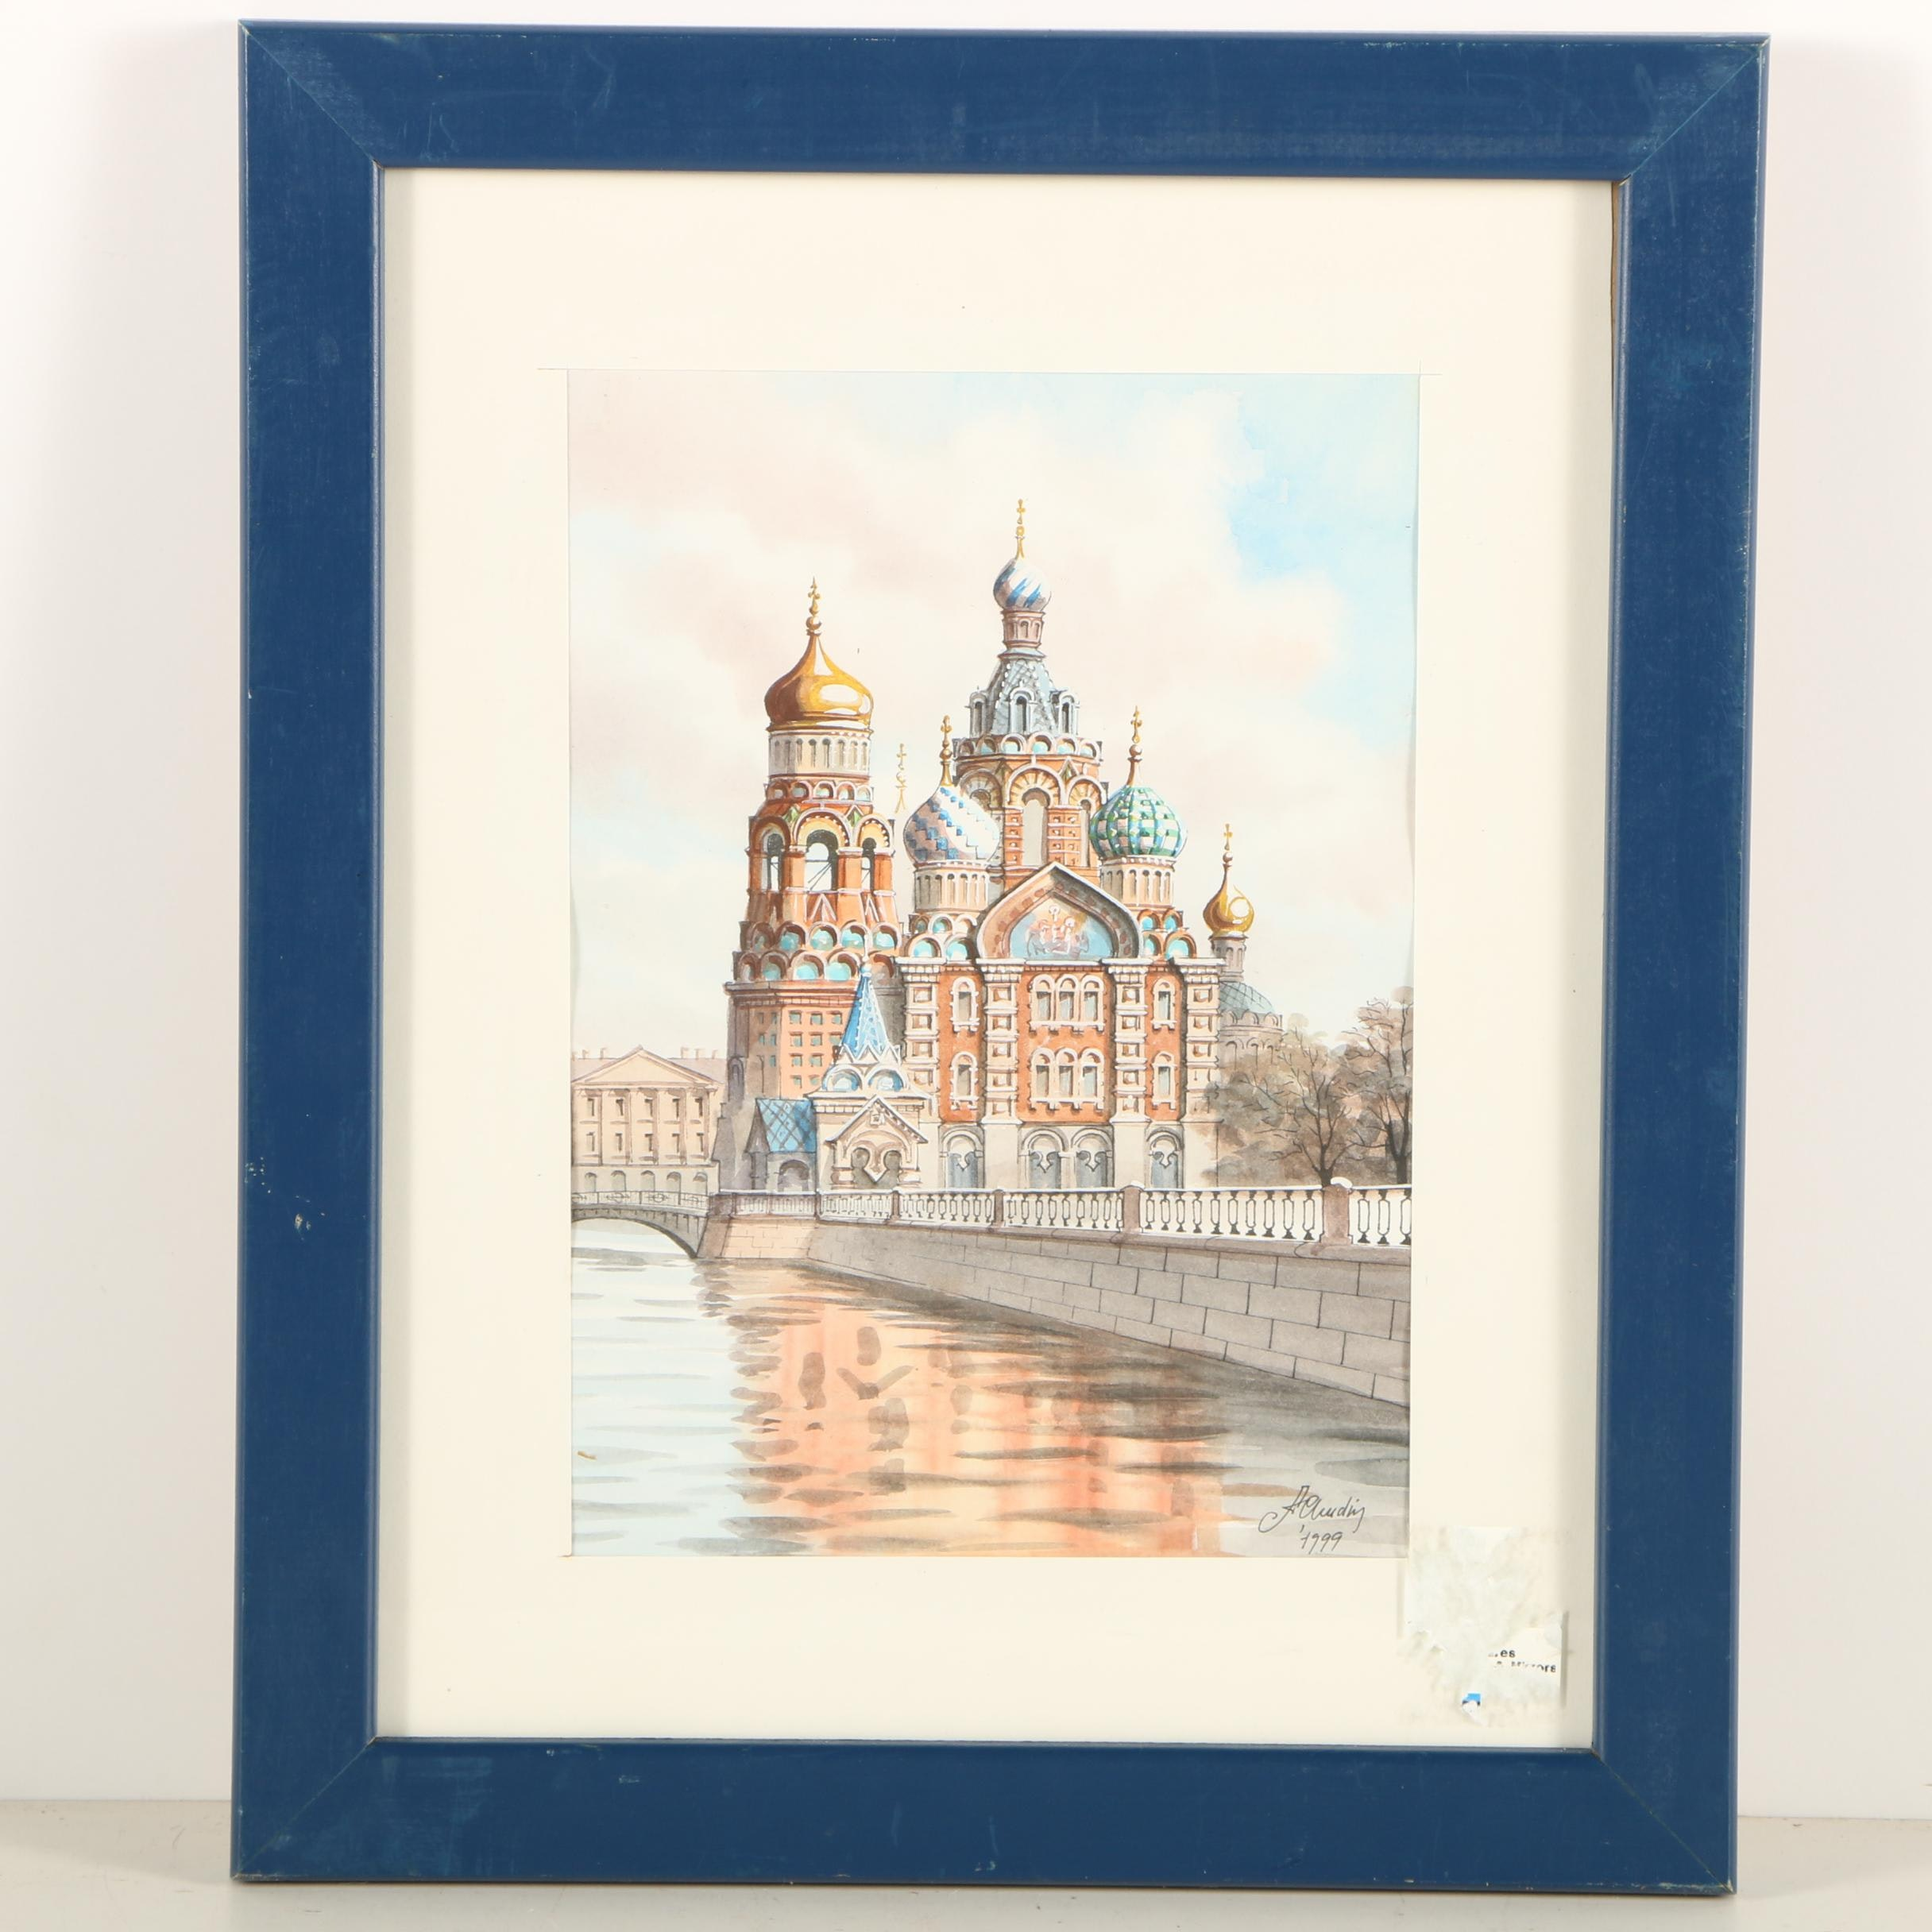 A. Claudia Colored Lithograph of St. Petersburg